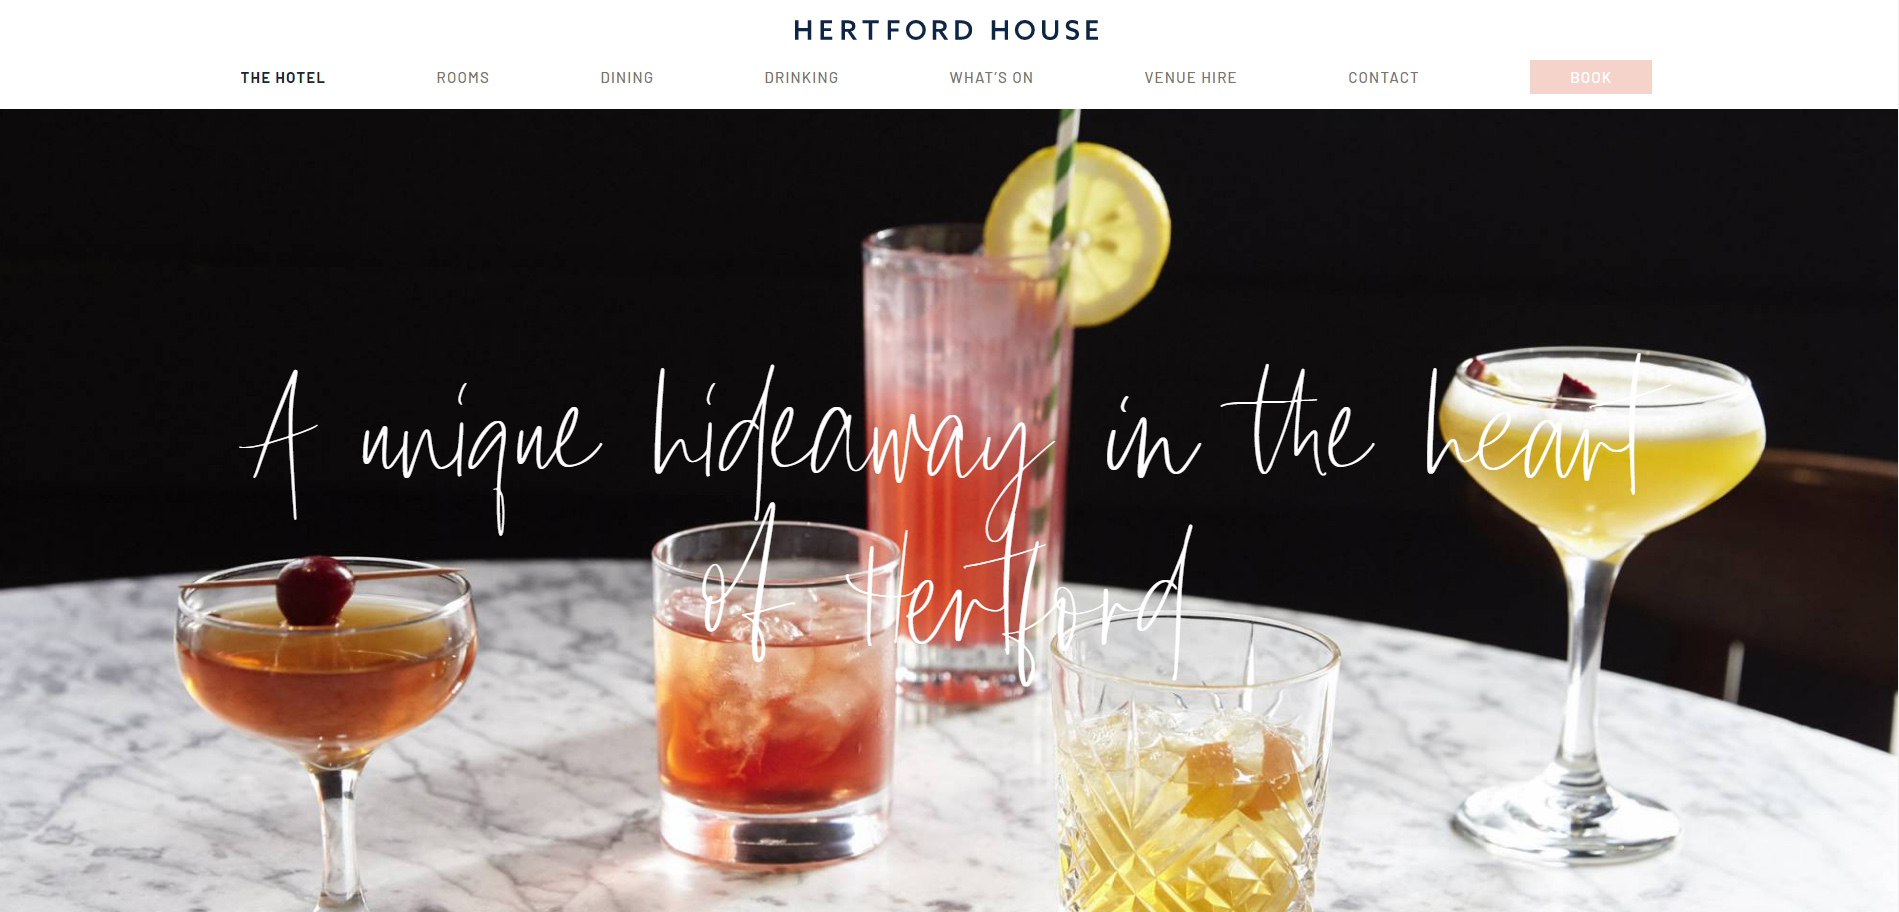 hertford-house-hotel-thewebmiracle